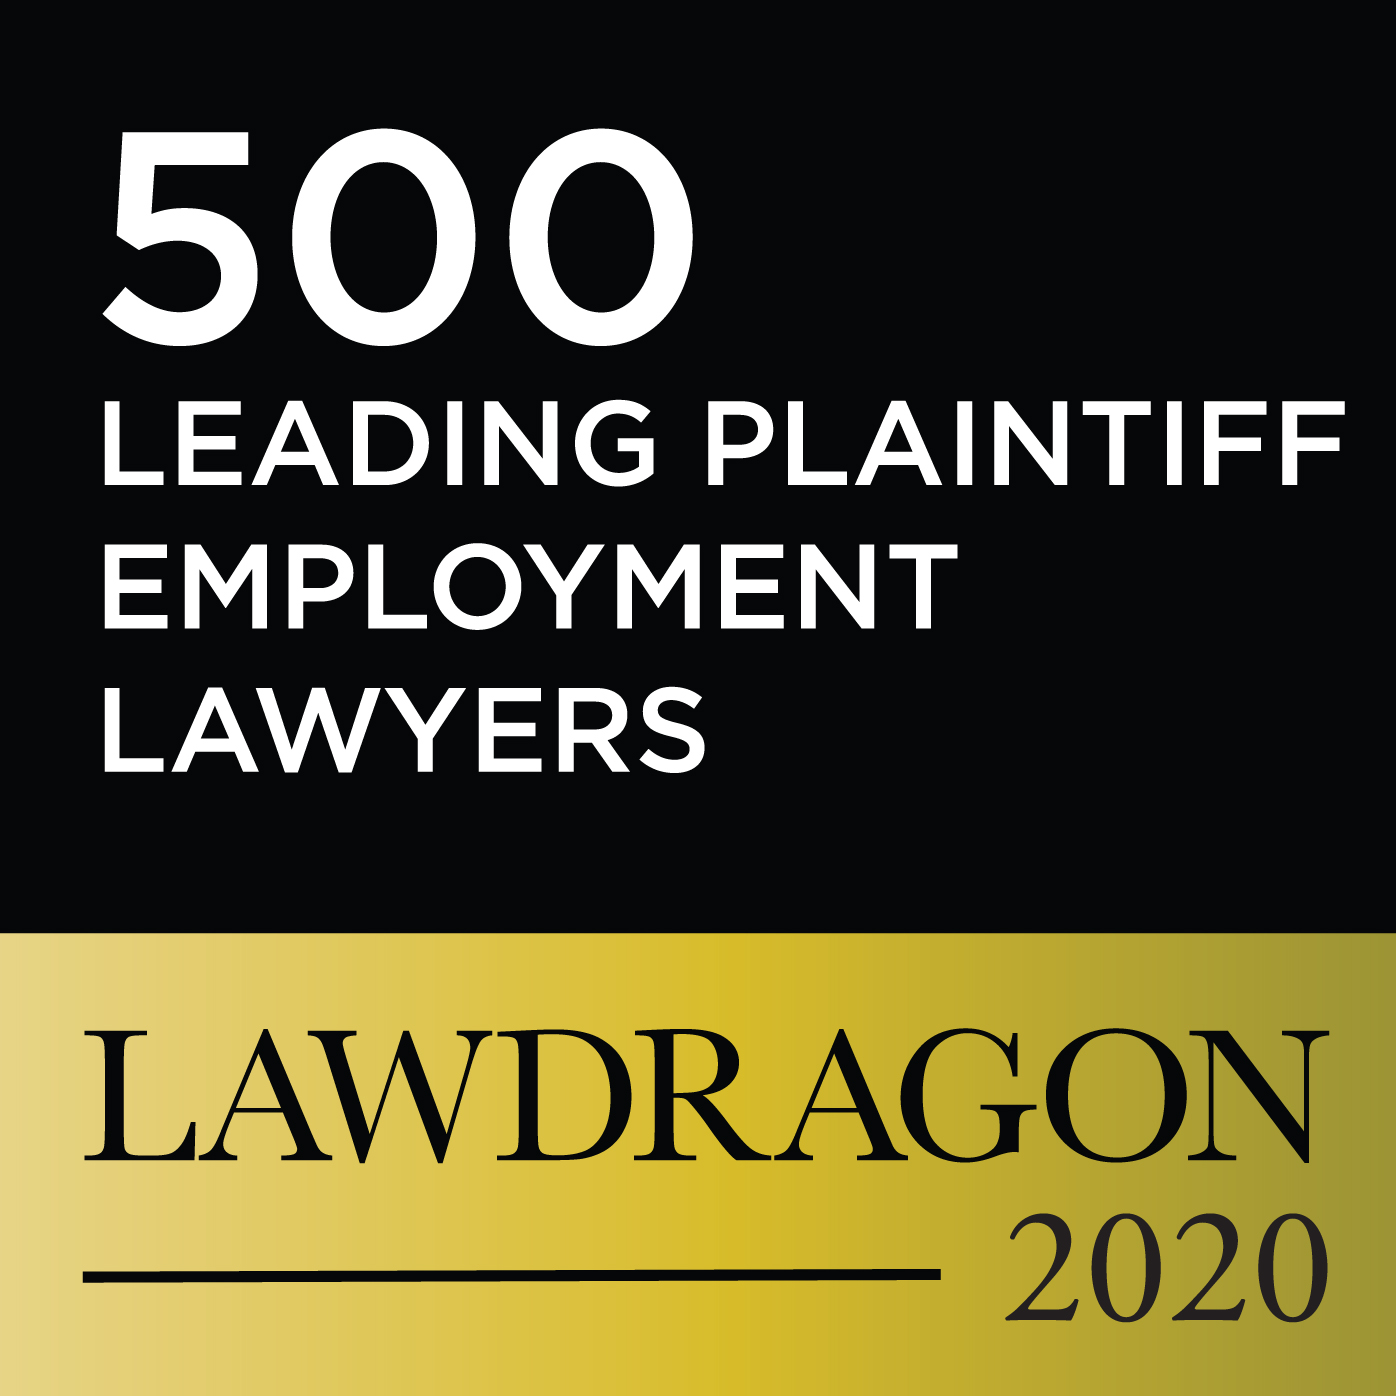 500 Leading Plaintiff Employment Lawyers, Lawdragon 2020